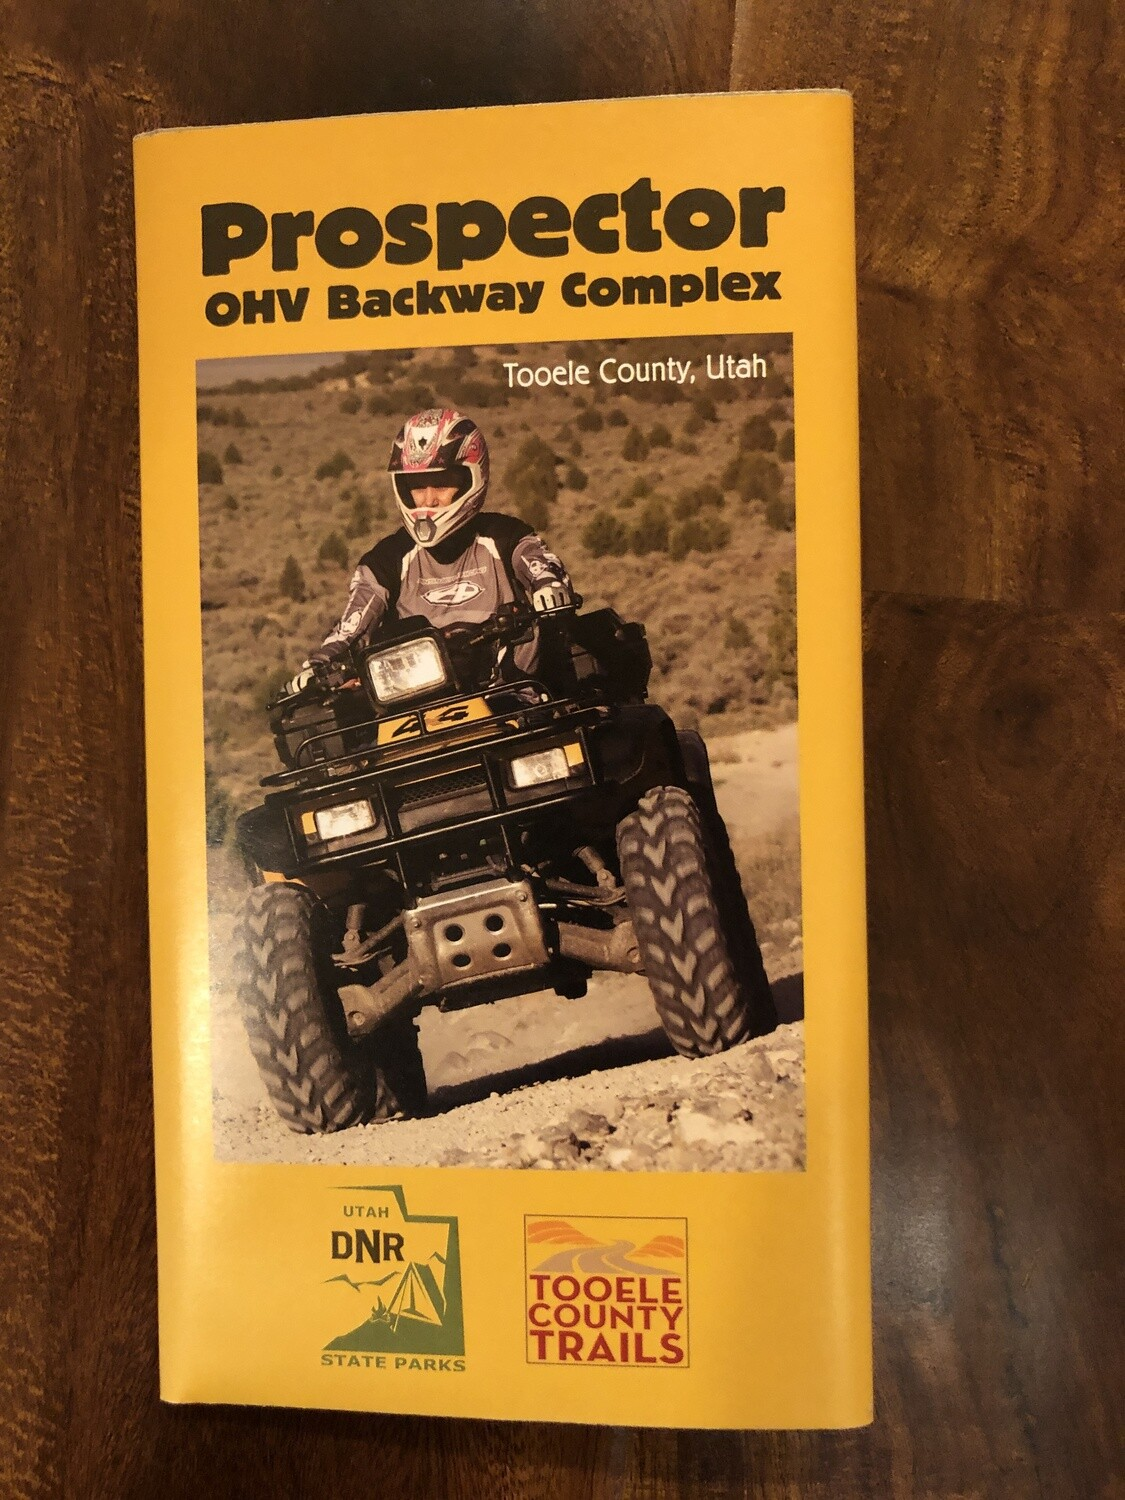 Prospector OHV Backway Complex Trail Map